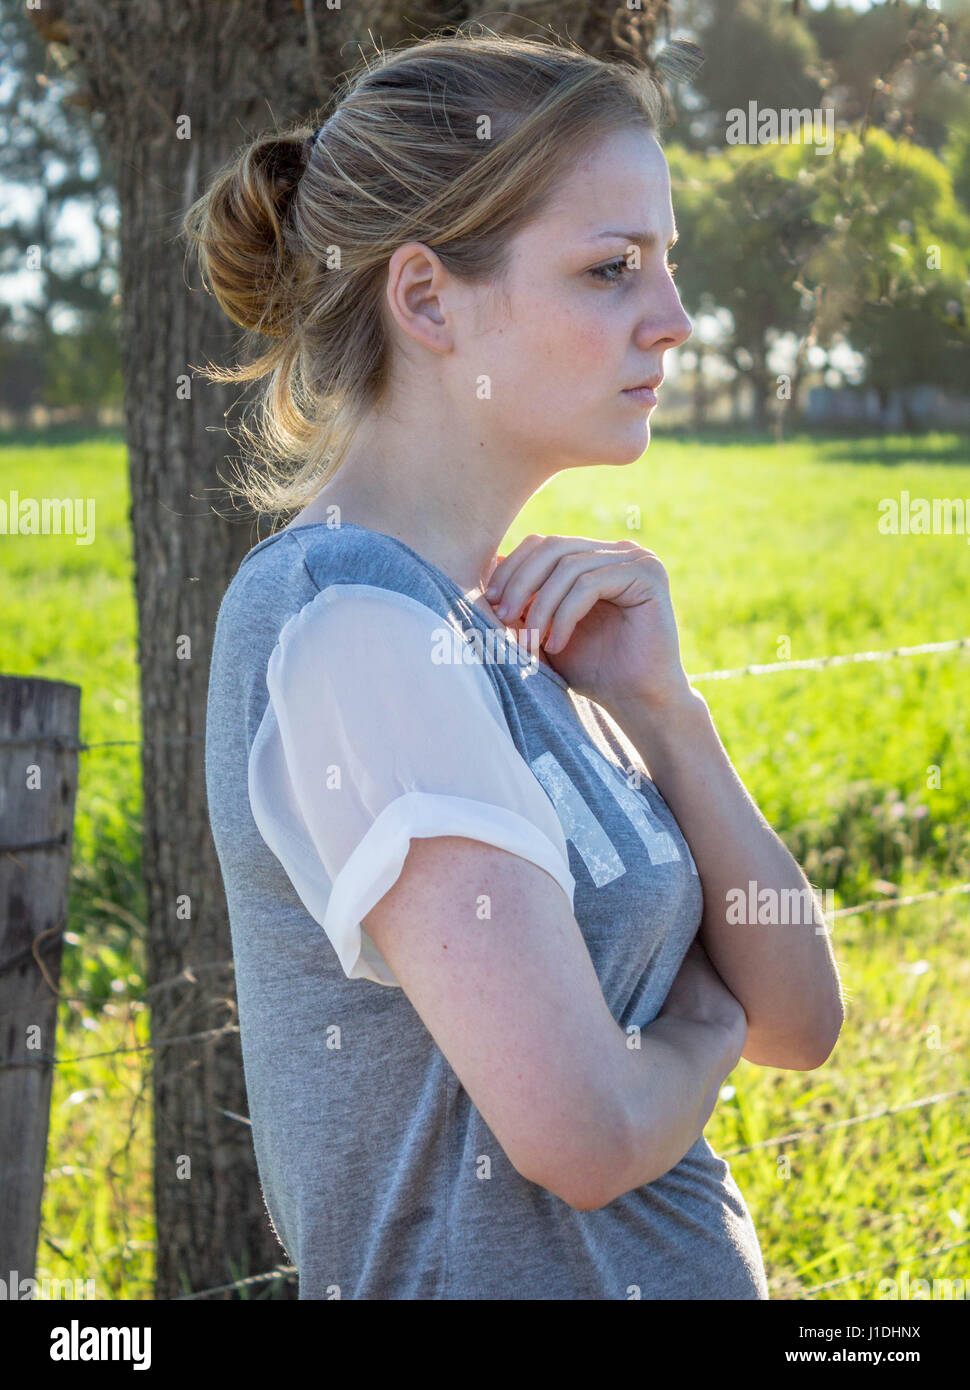 Portrait of serious young blonde woman looking ahead and away from camera standing in the shade under a tree in - Stock Image